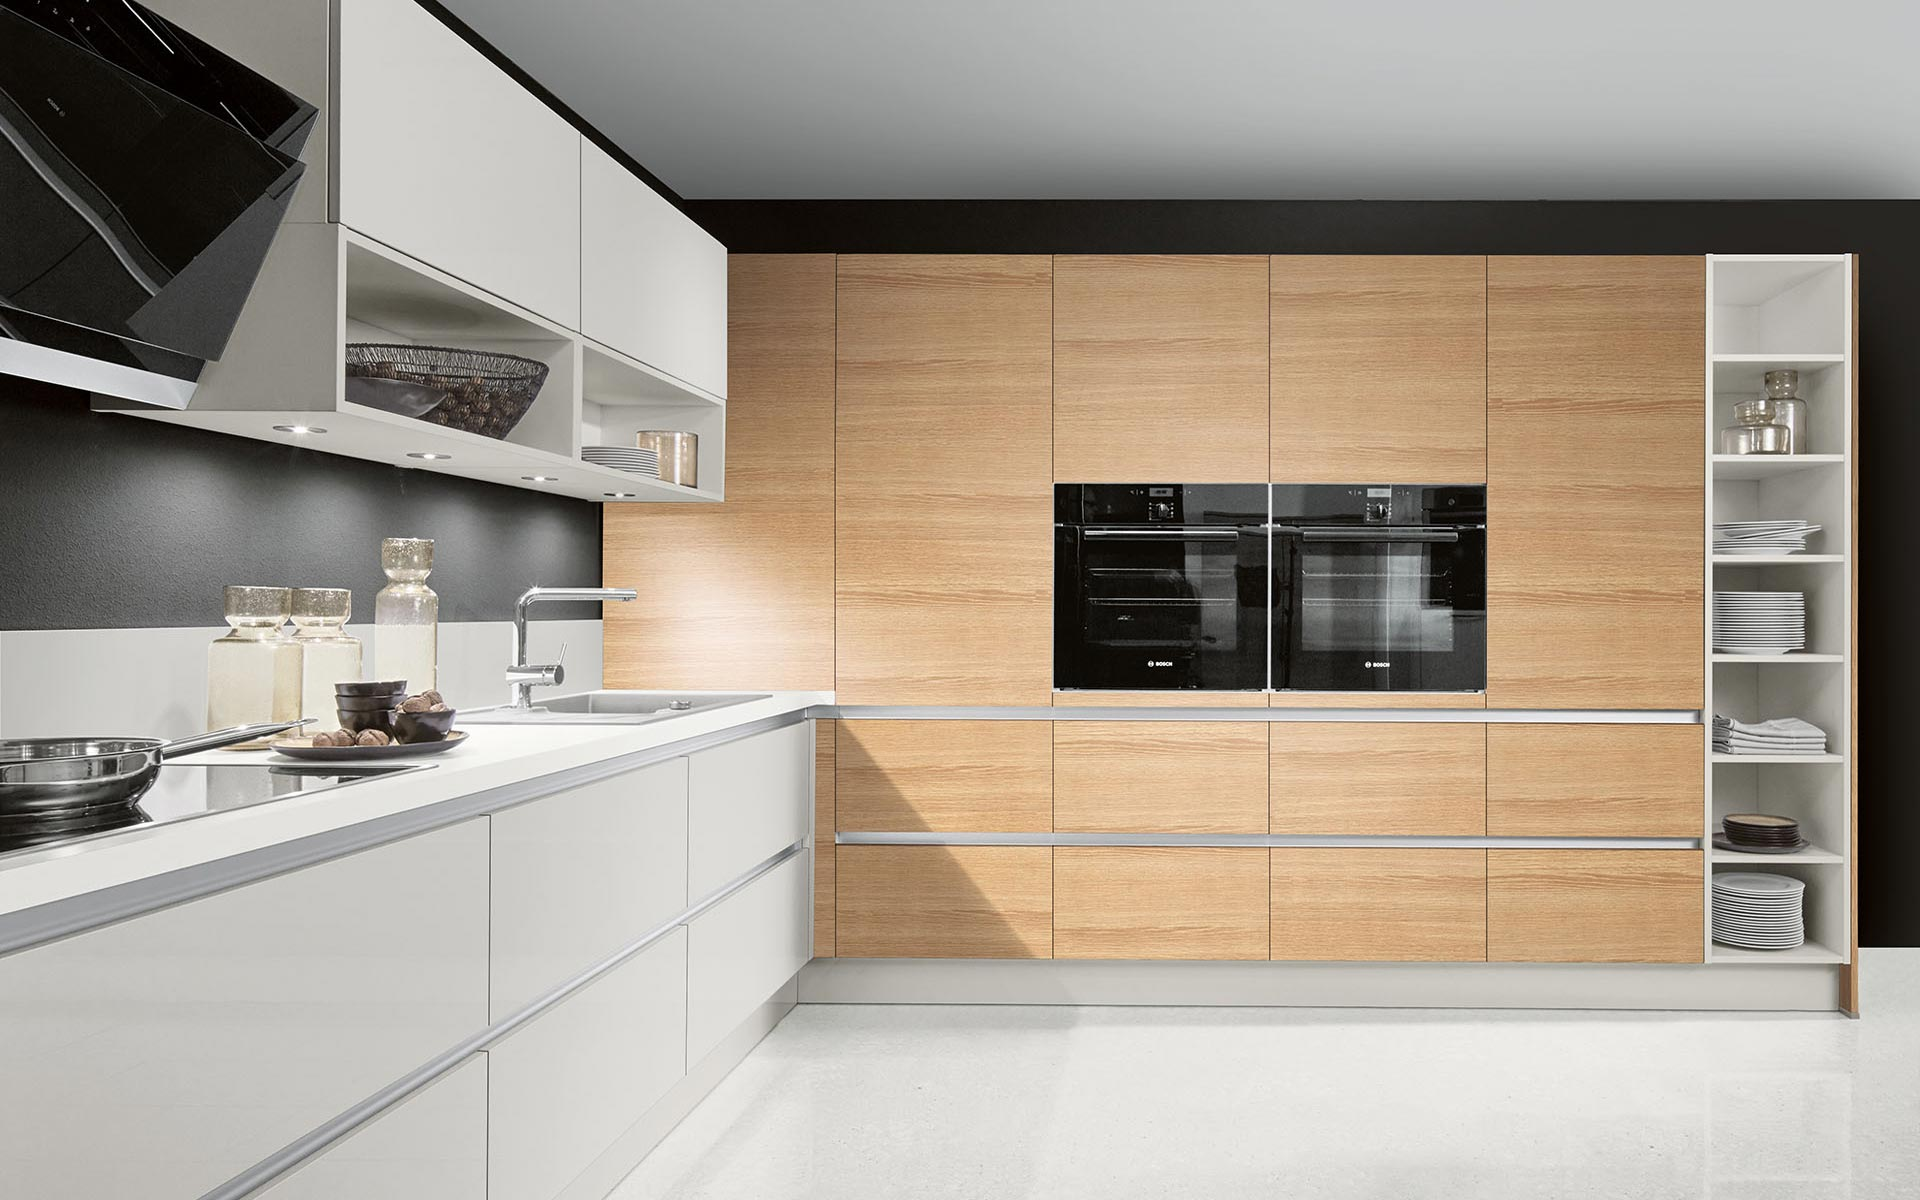 Toronto: Kitchens from Germany, Europe. Calm H Hell • Luce Grigio